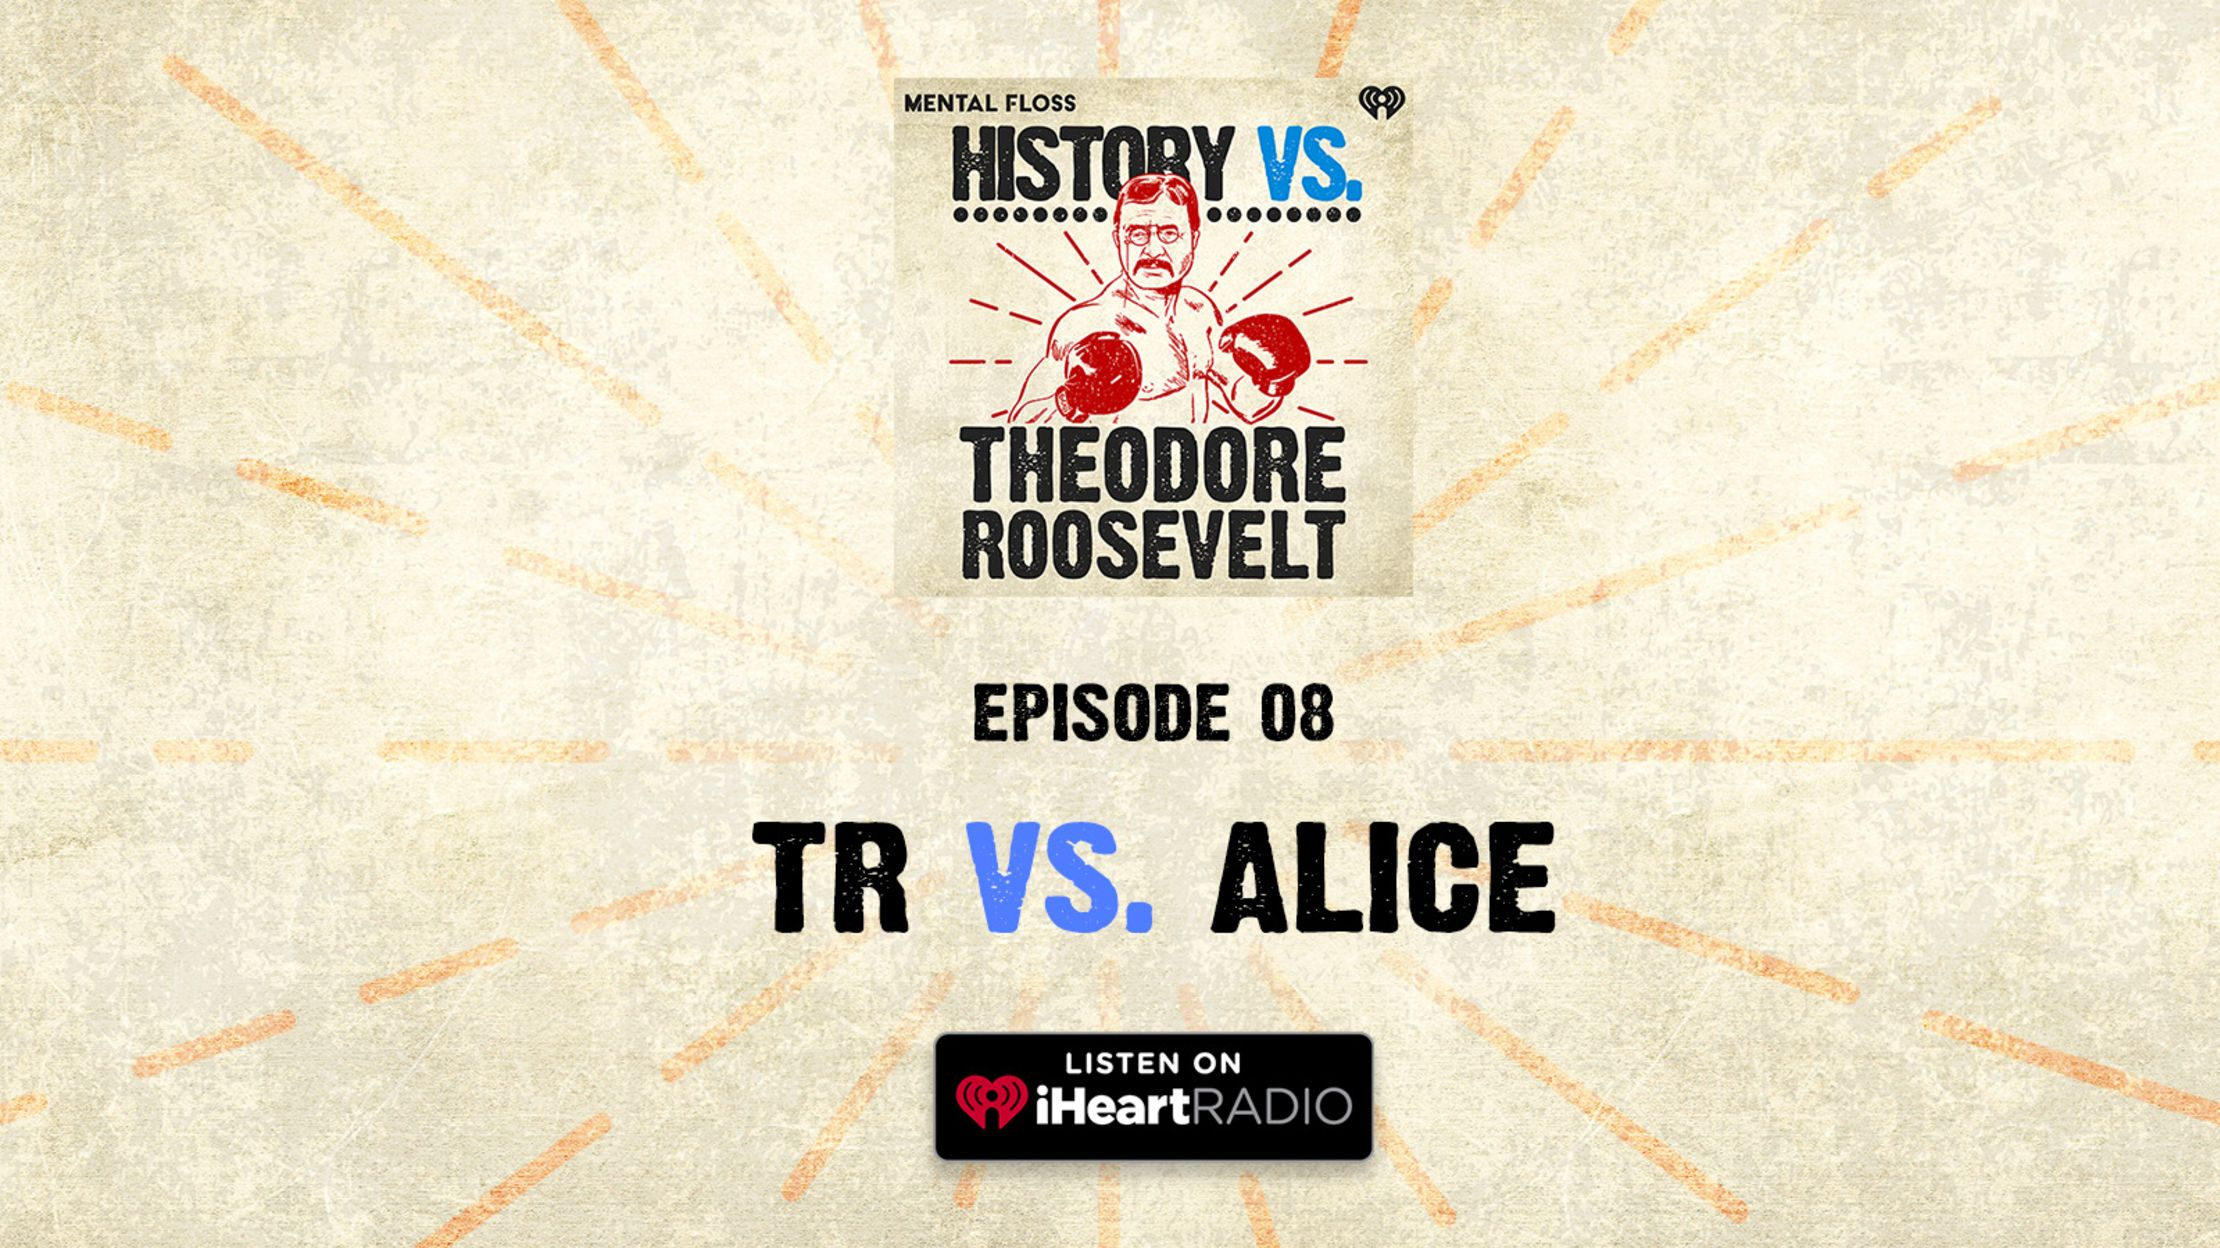 History Vs. Episode 8: Theodore Roosevelt Vs. Alice